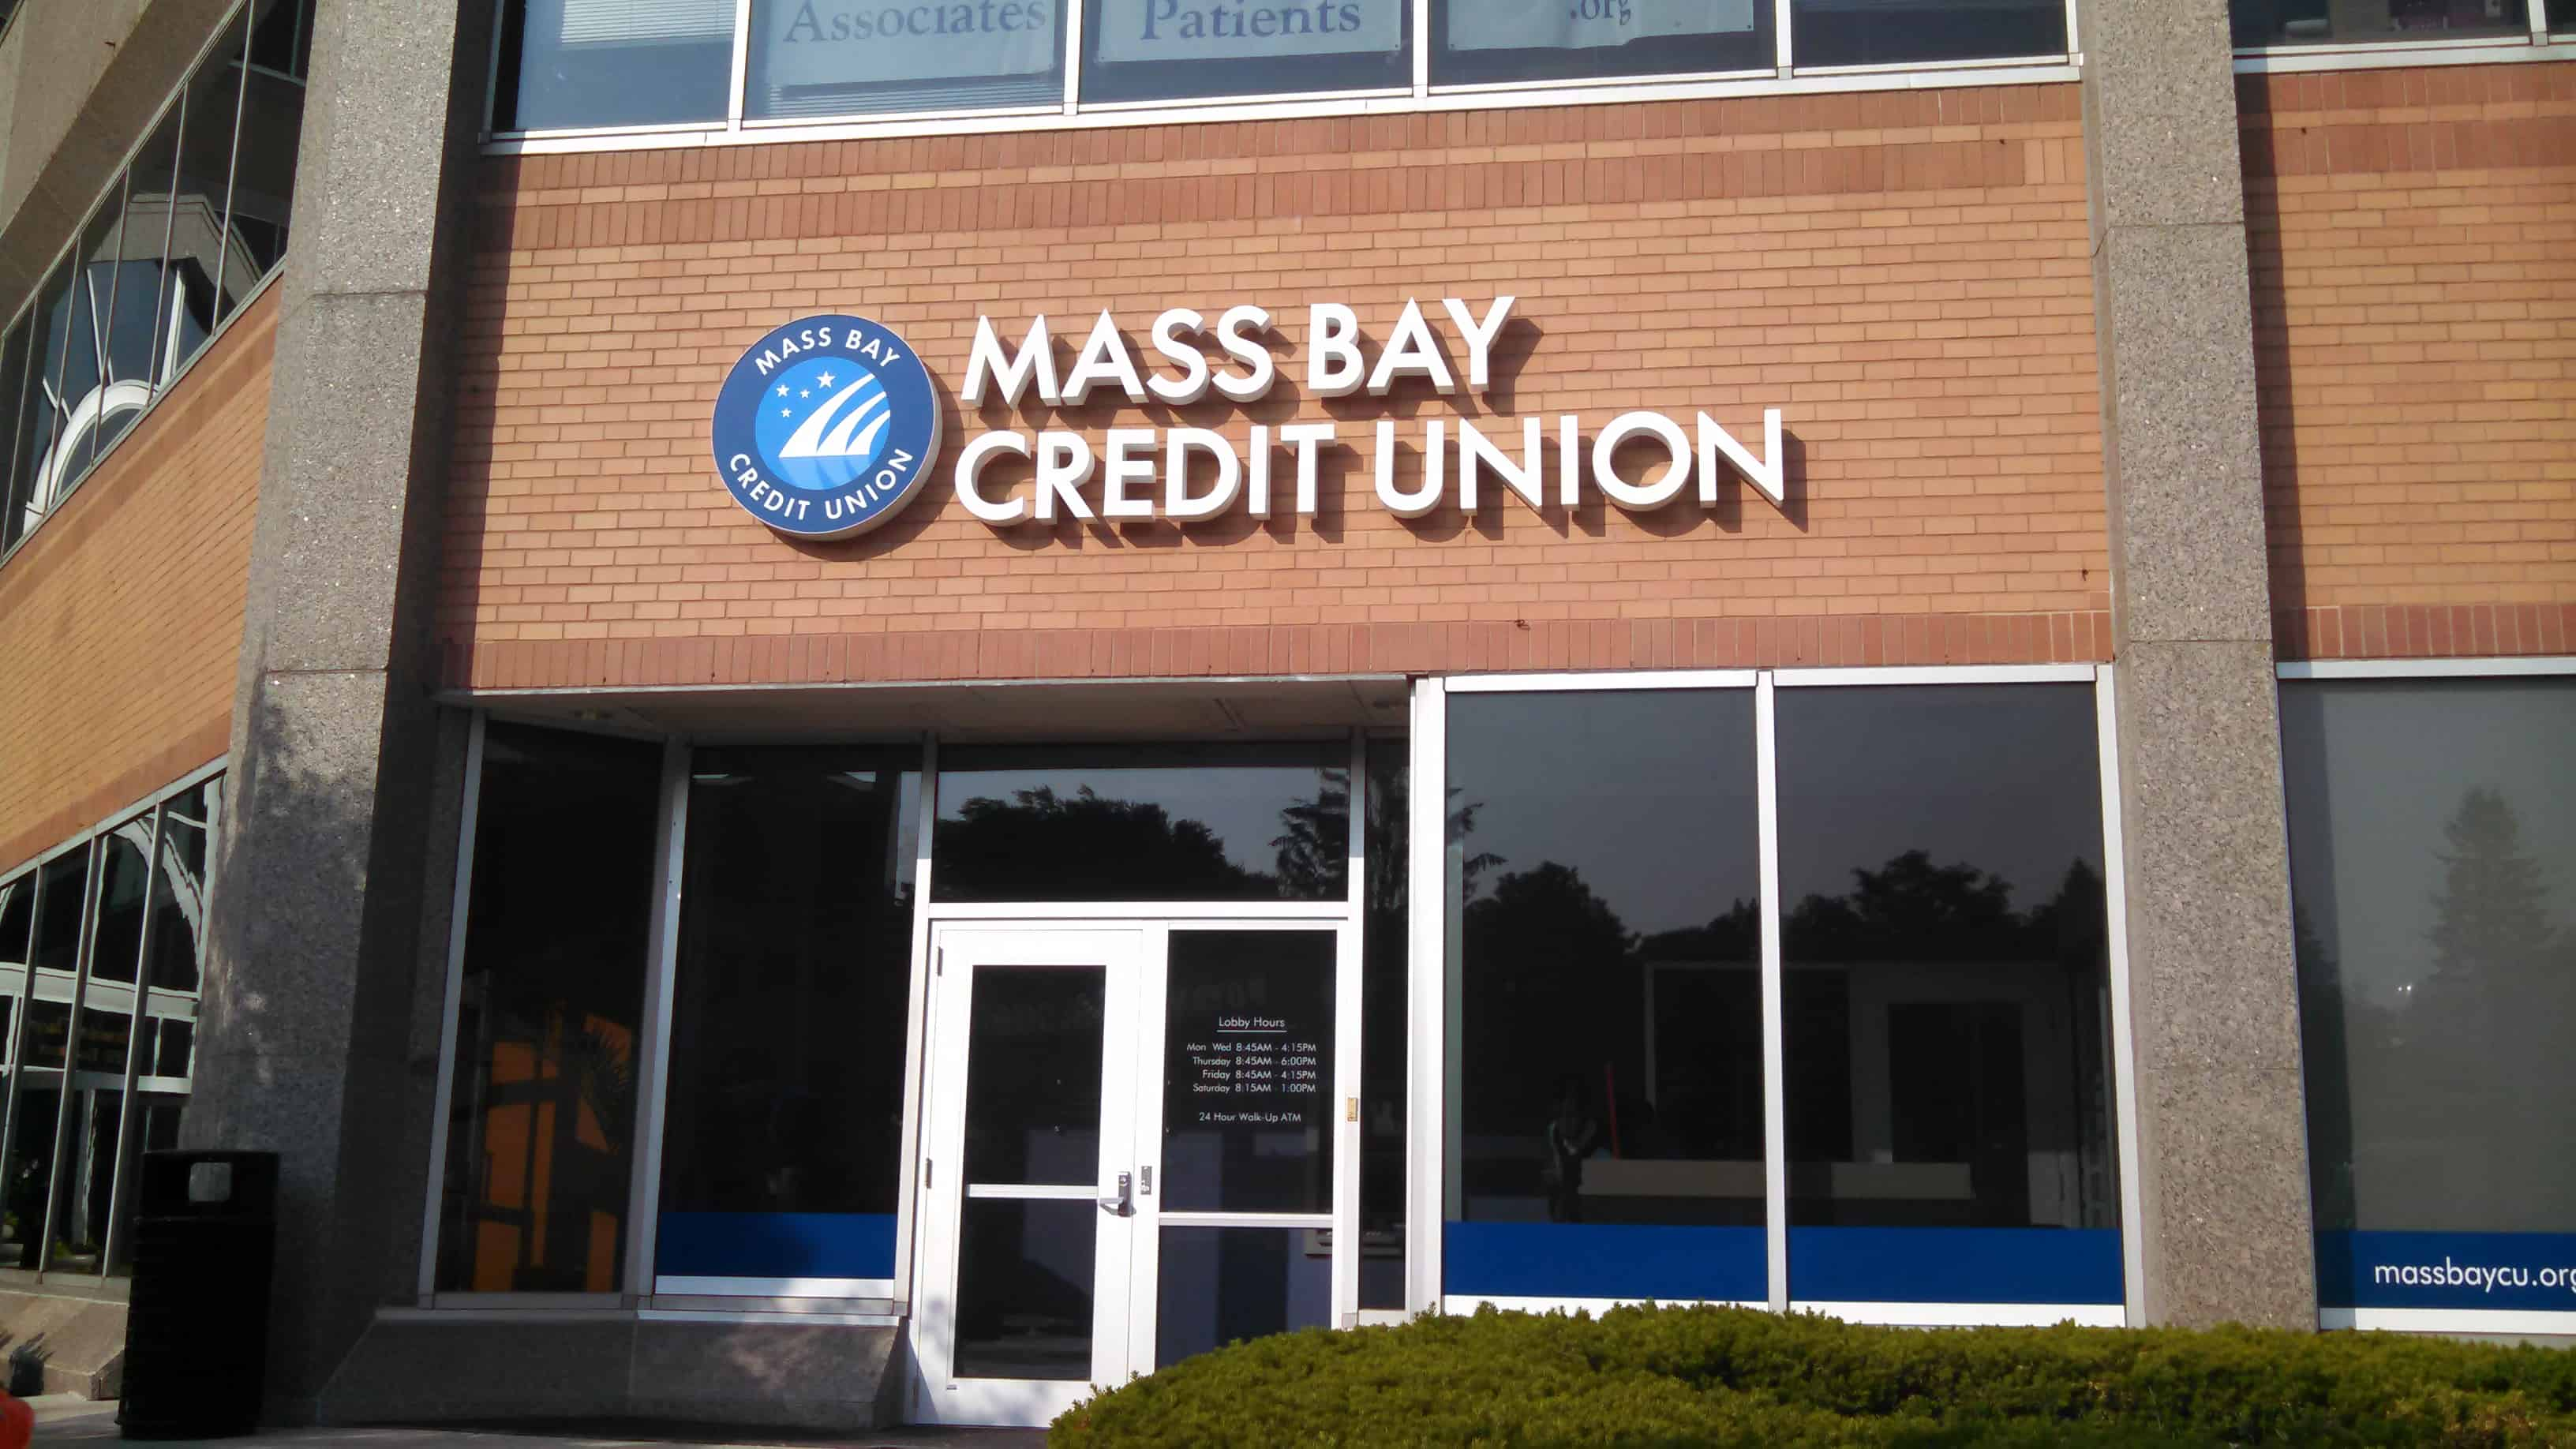 Mass Bay CU Building Sign